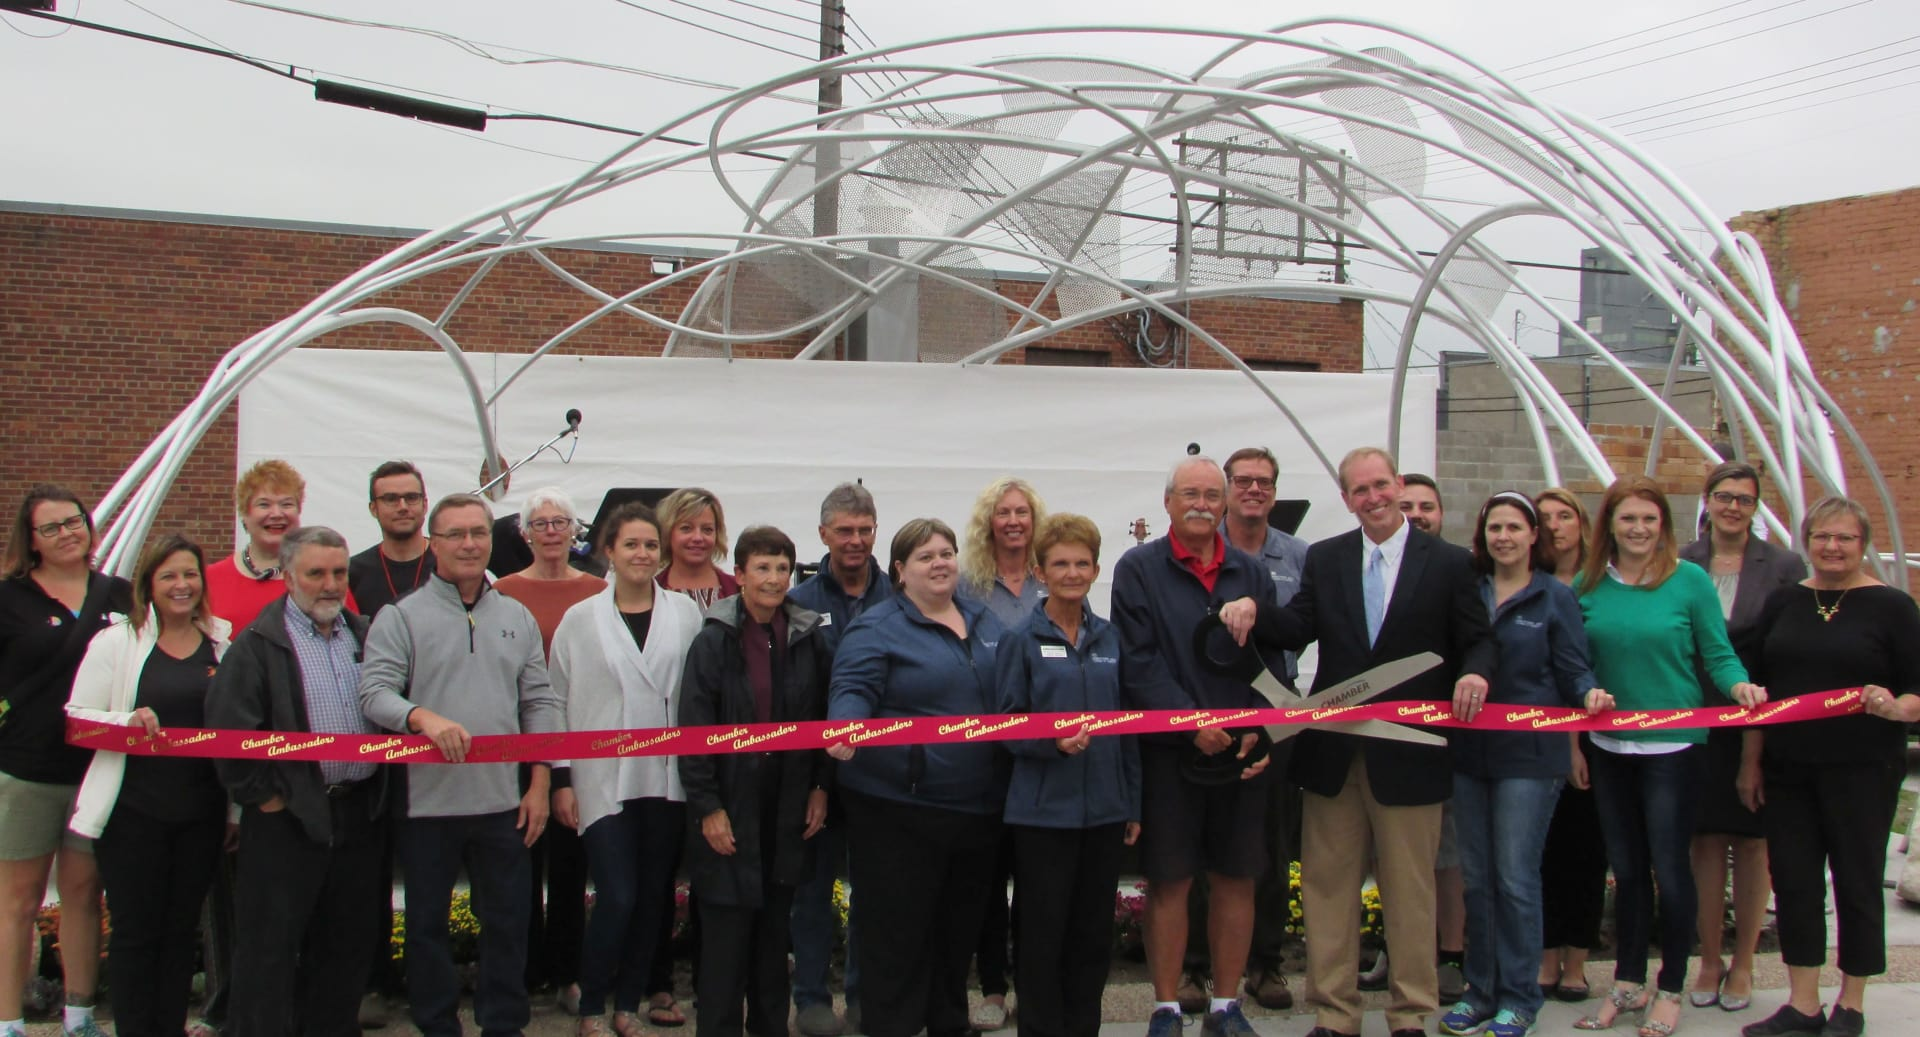 Ribbon-Cutting-group-w1920.jpg